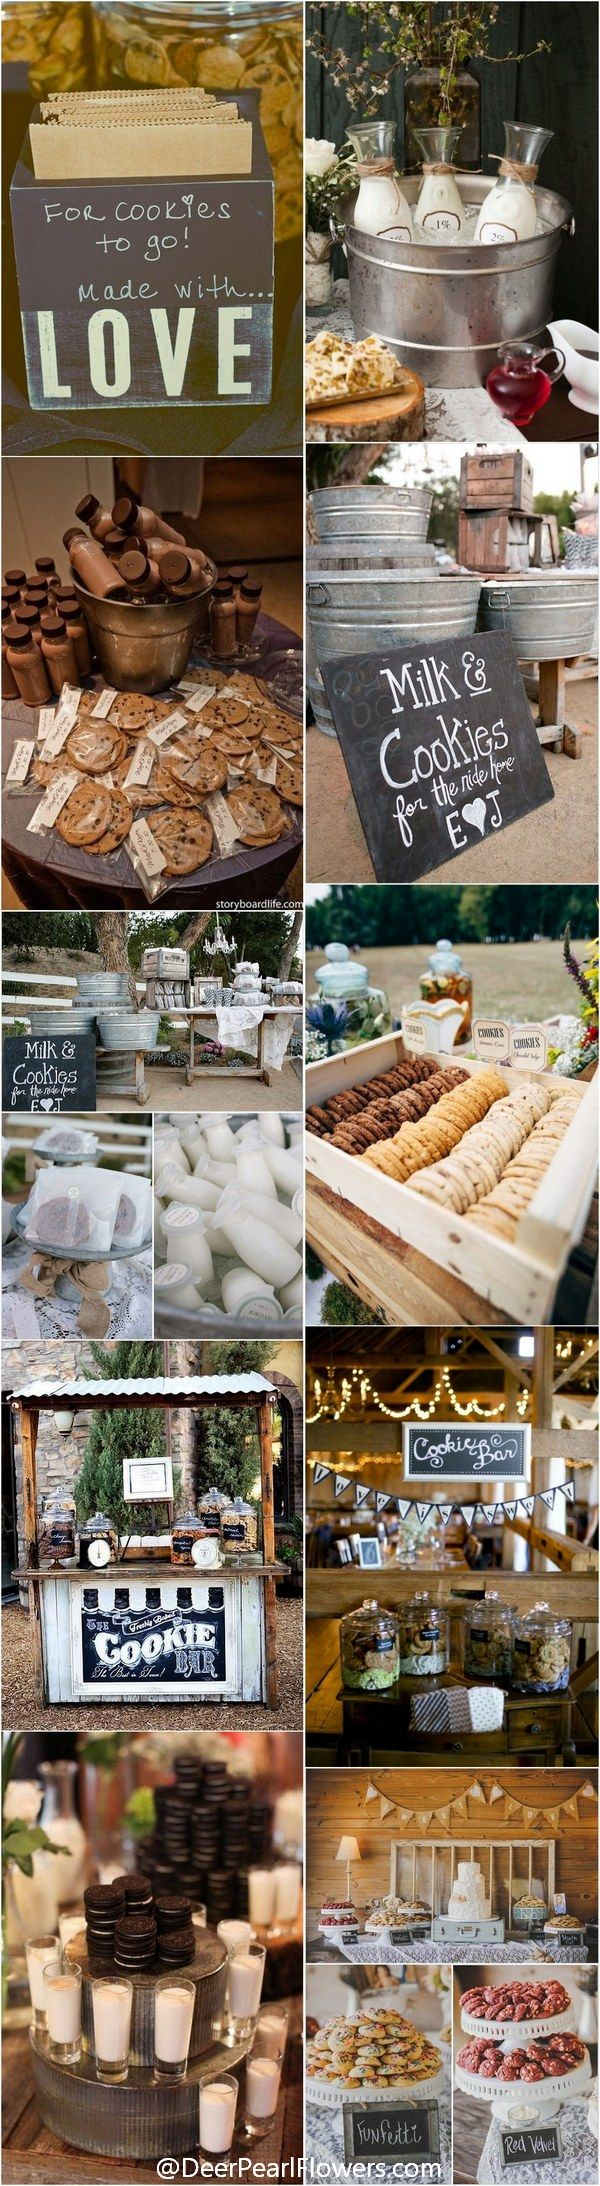 Rustic country wedding ideas - milk and cookies wedding bar /  / http://www.deerpearlflowers.com/wedding-smore-cookies-milk-bar-ideas/